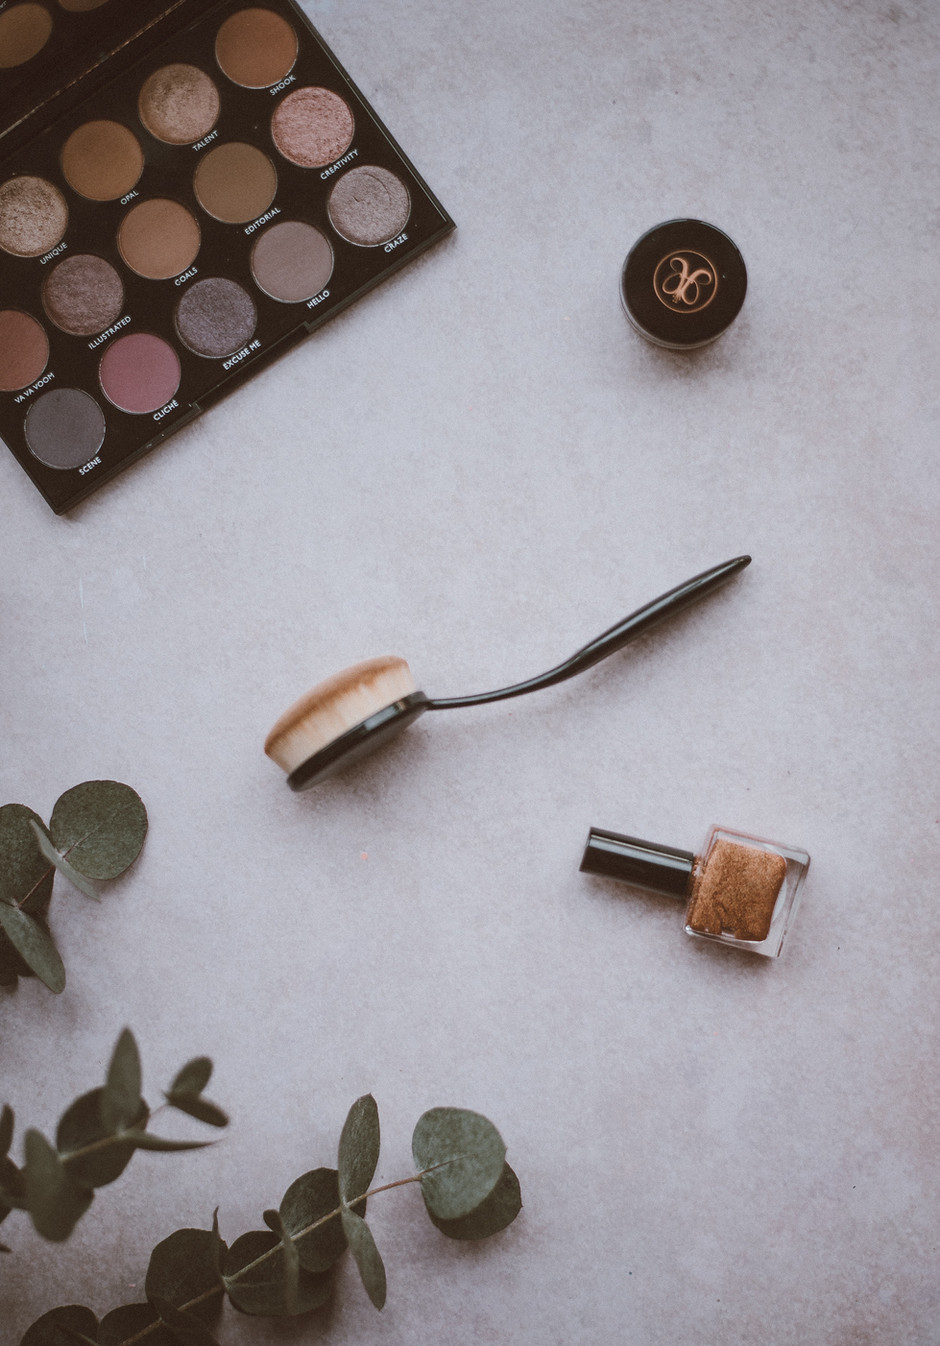 A Little About Me: How I Became a Makeup Artist